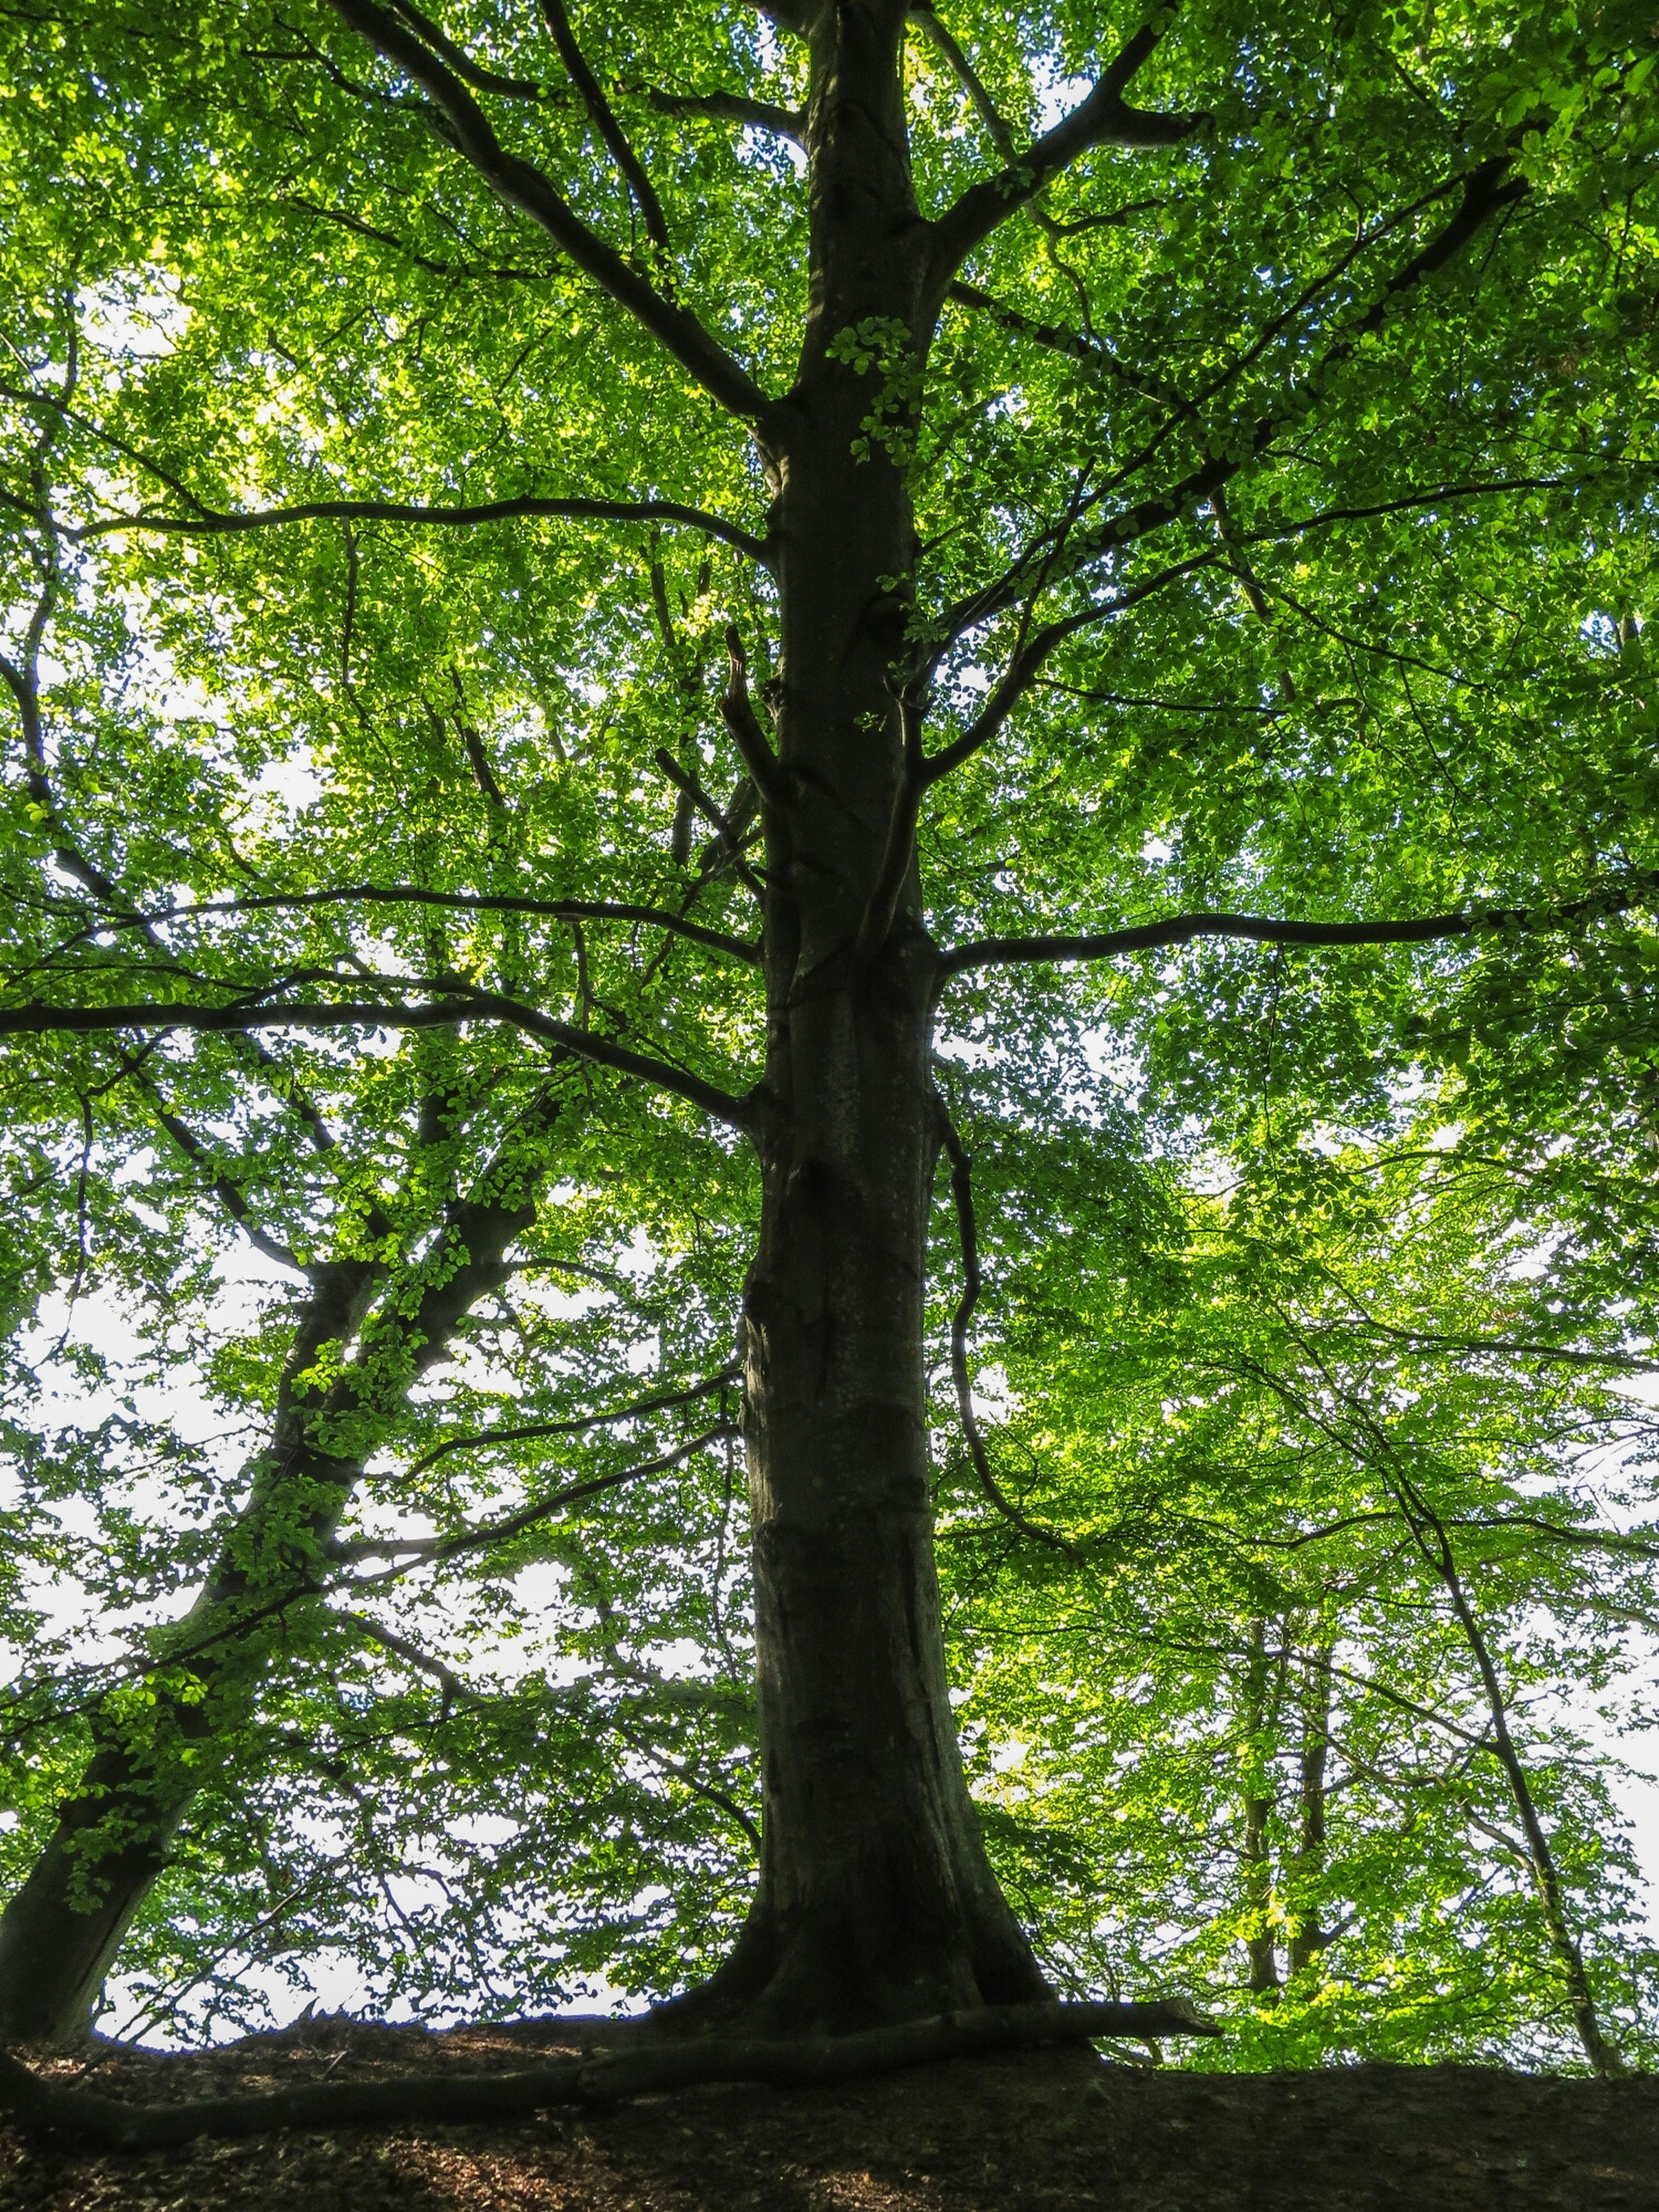 tree, growth, forest, green color, branch, tree trunk, tranquility, nature, beauty in nature, low angle view, lush foliage, woodland, tranquil scene, scenics, green, day, outdoors, no people, sunlight, leaf